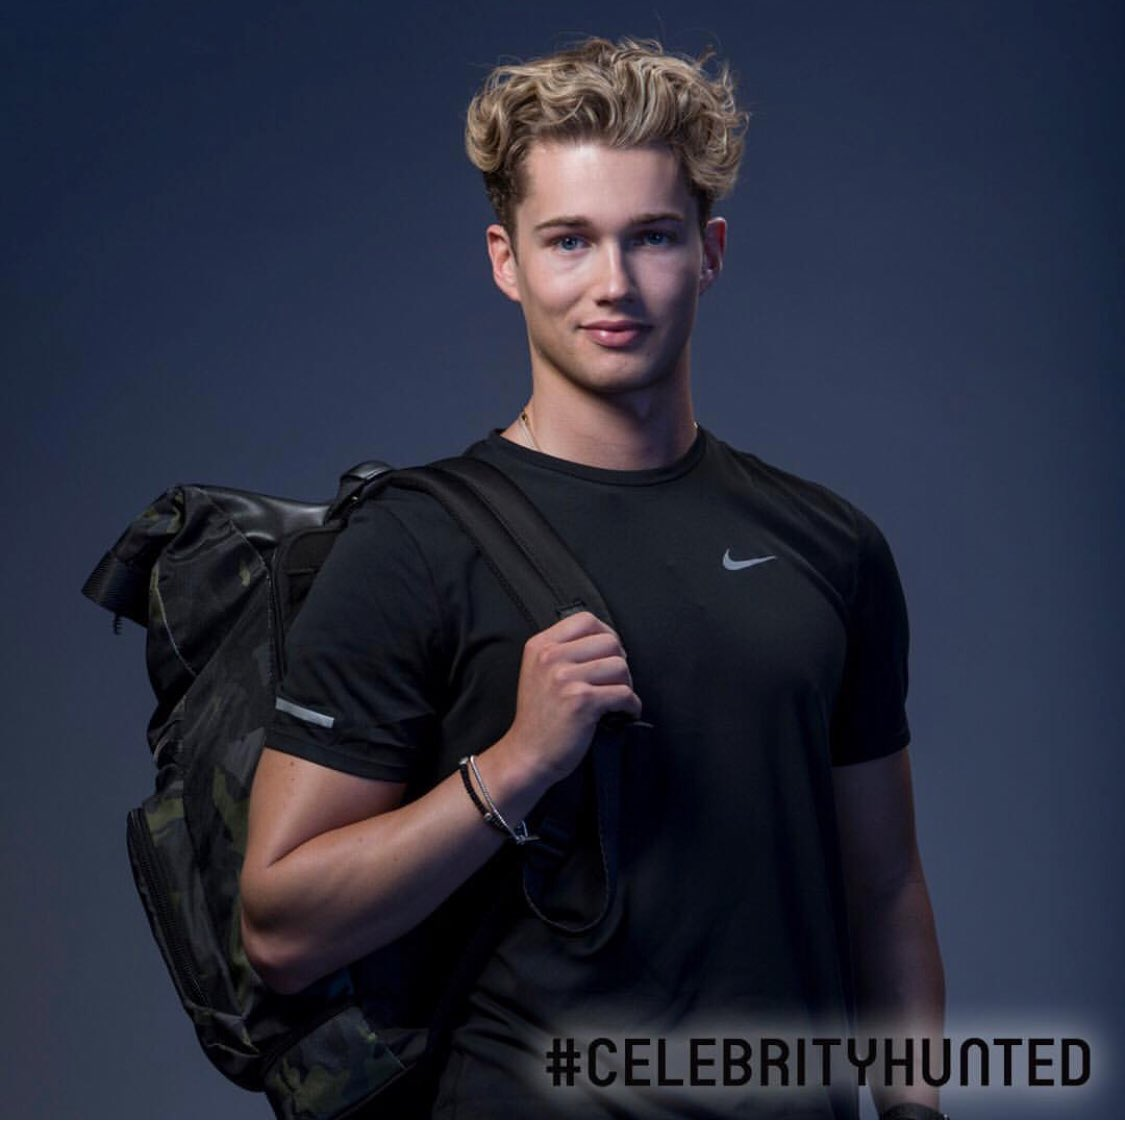 AJ Pritchard's photo on #CelebrityHunted